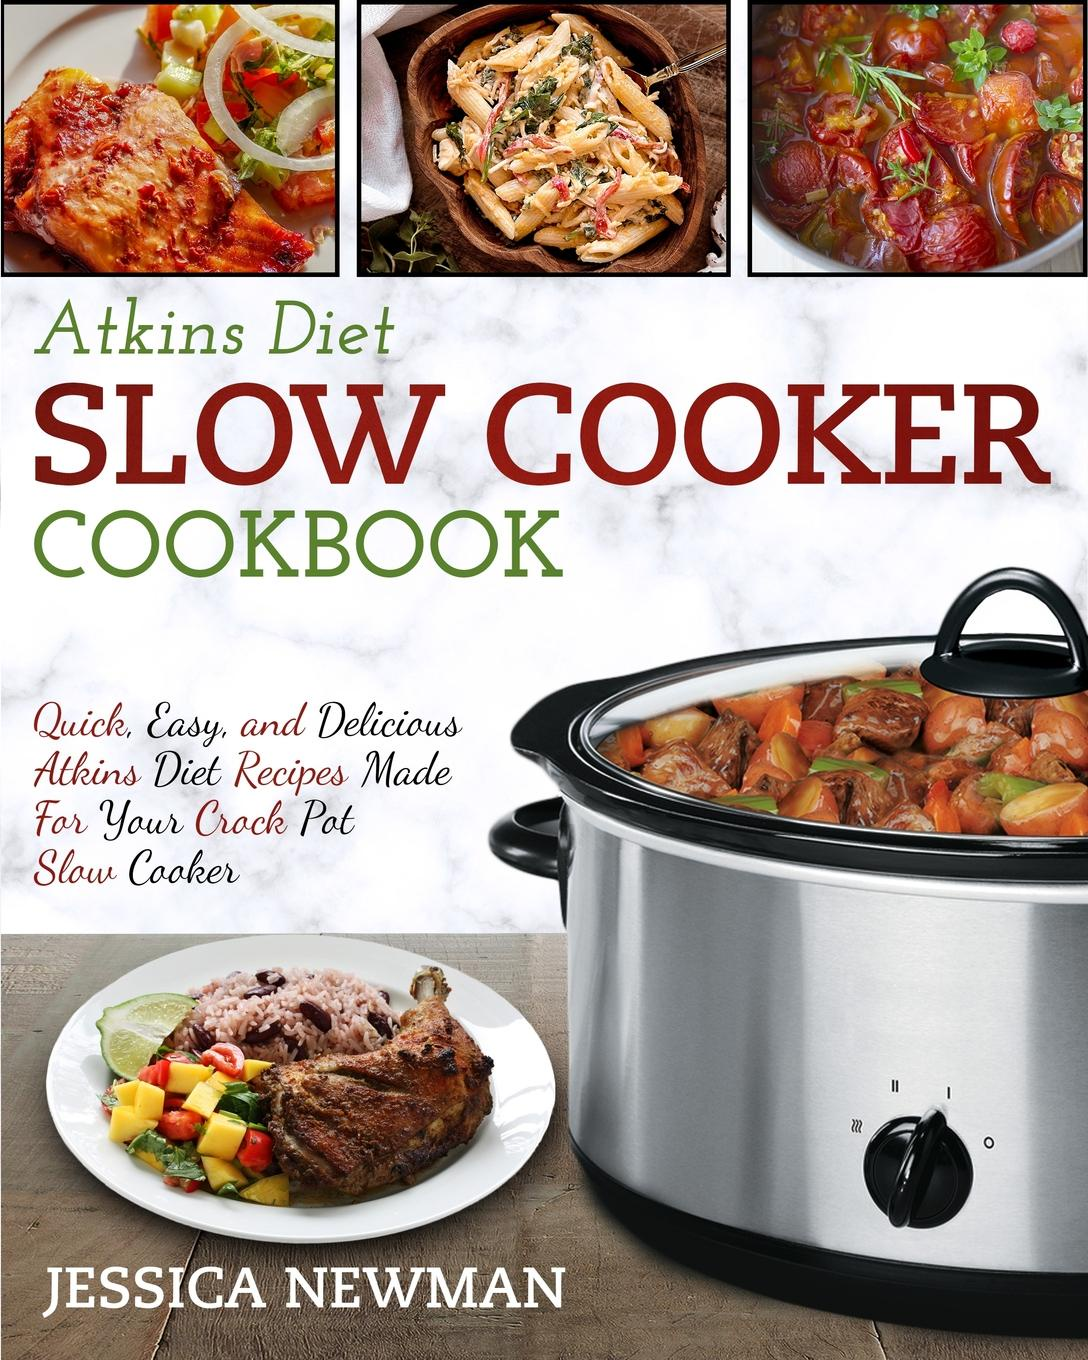 Jessica Newman Atkins Diet Slow Cooker Cookbook. Quick, Easy, and Delicious Atkins Diet Recipes Made for Your Crock Pot Slow Cooker thinking fast and slow